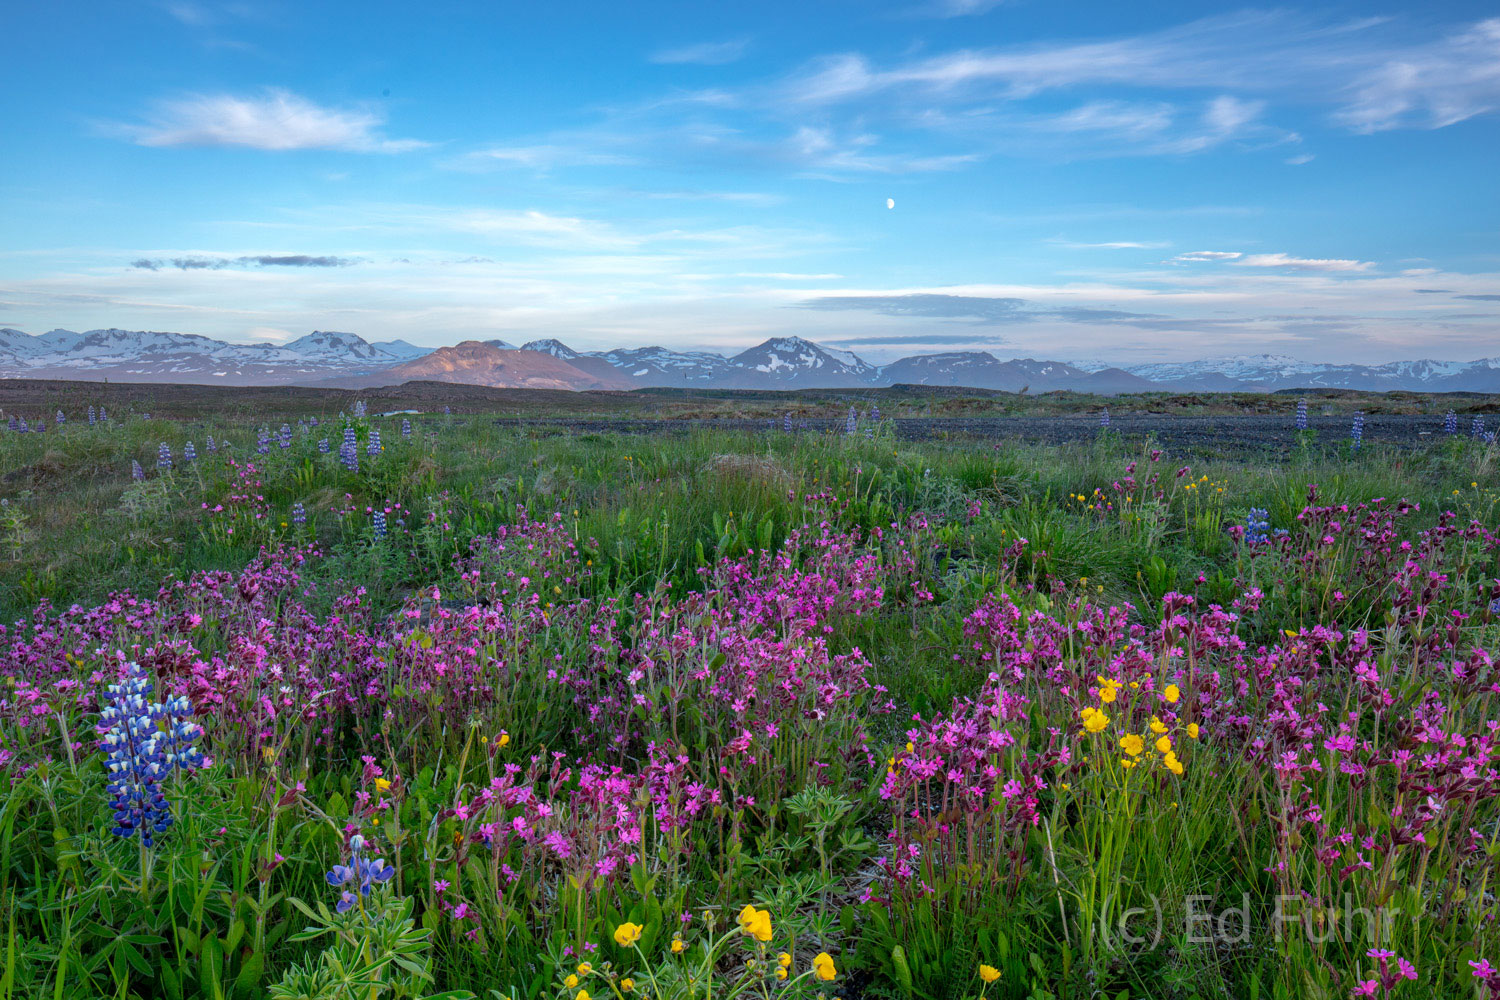 Though the soils on Iceland are thin and lava dominates, great meadows of wildflowers carpet wide swaths of the island.